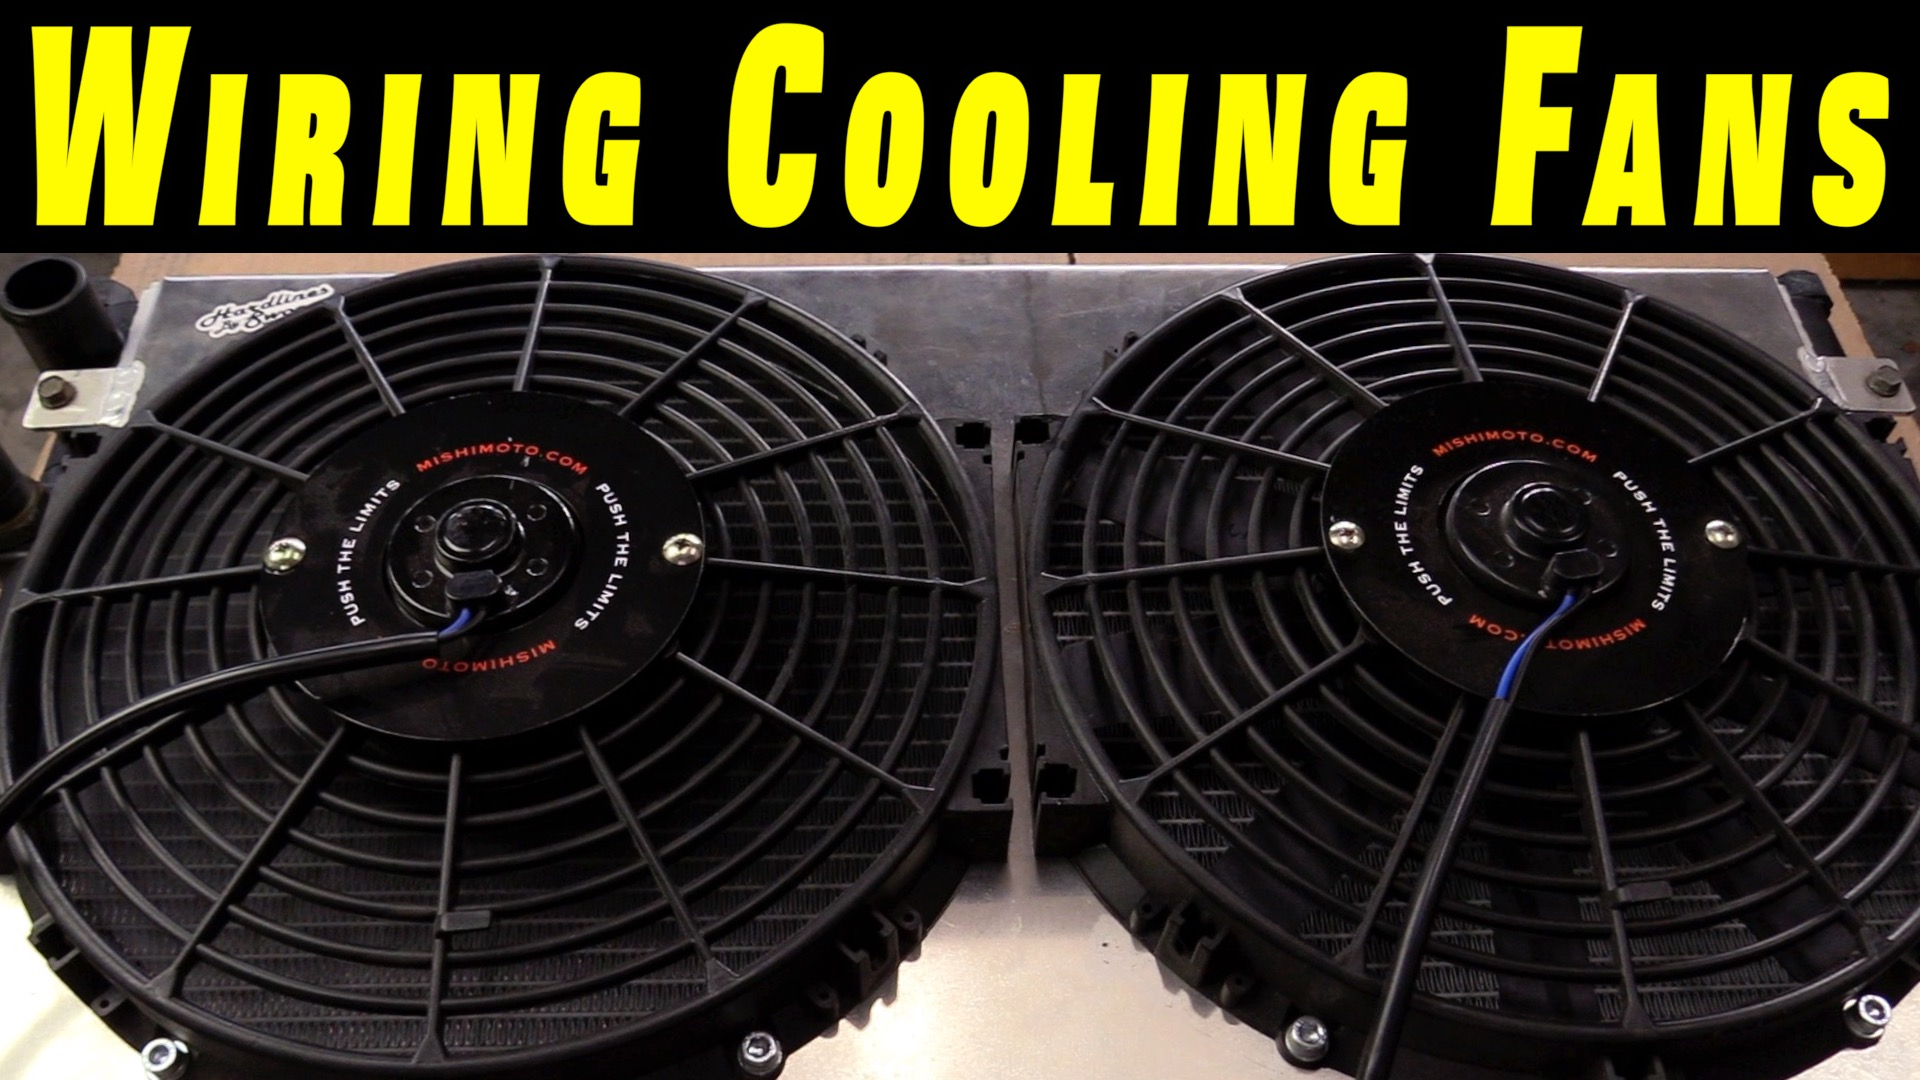 How To Wire Electric Cooling Fans With Crimp Connections Humble Fan Wiring Mechanic